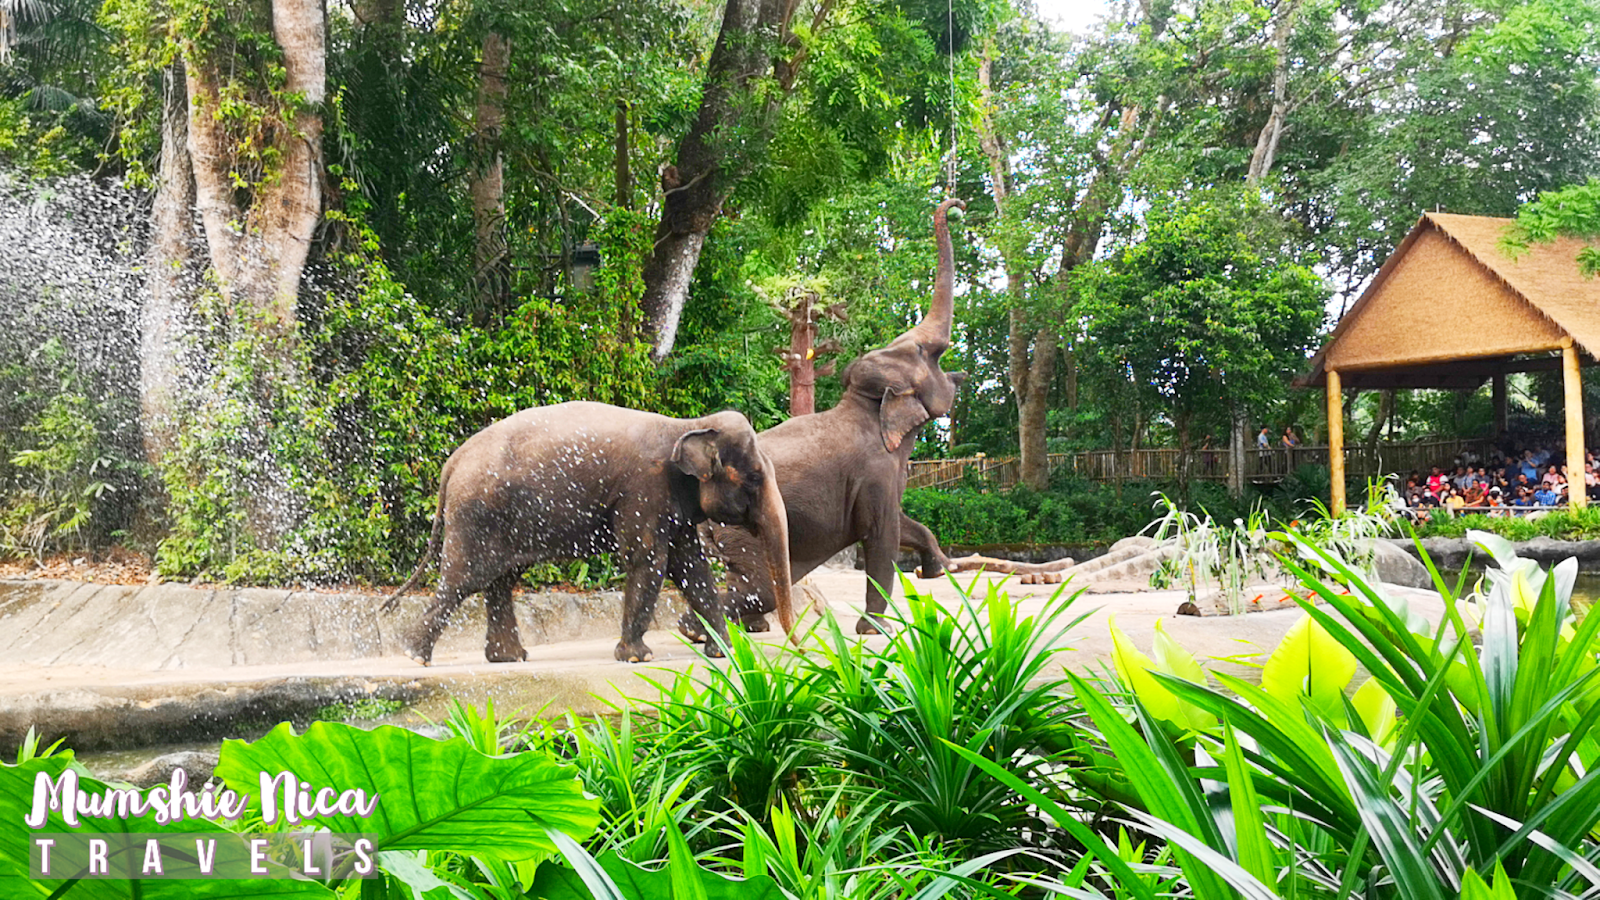 Two Elephant at Singapore Zoo showing off their skills